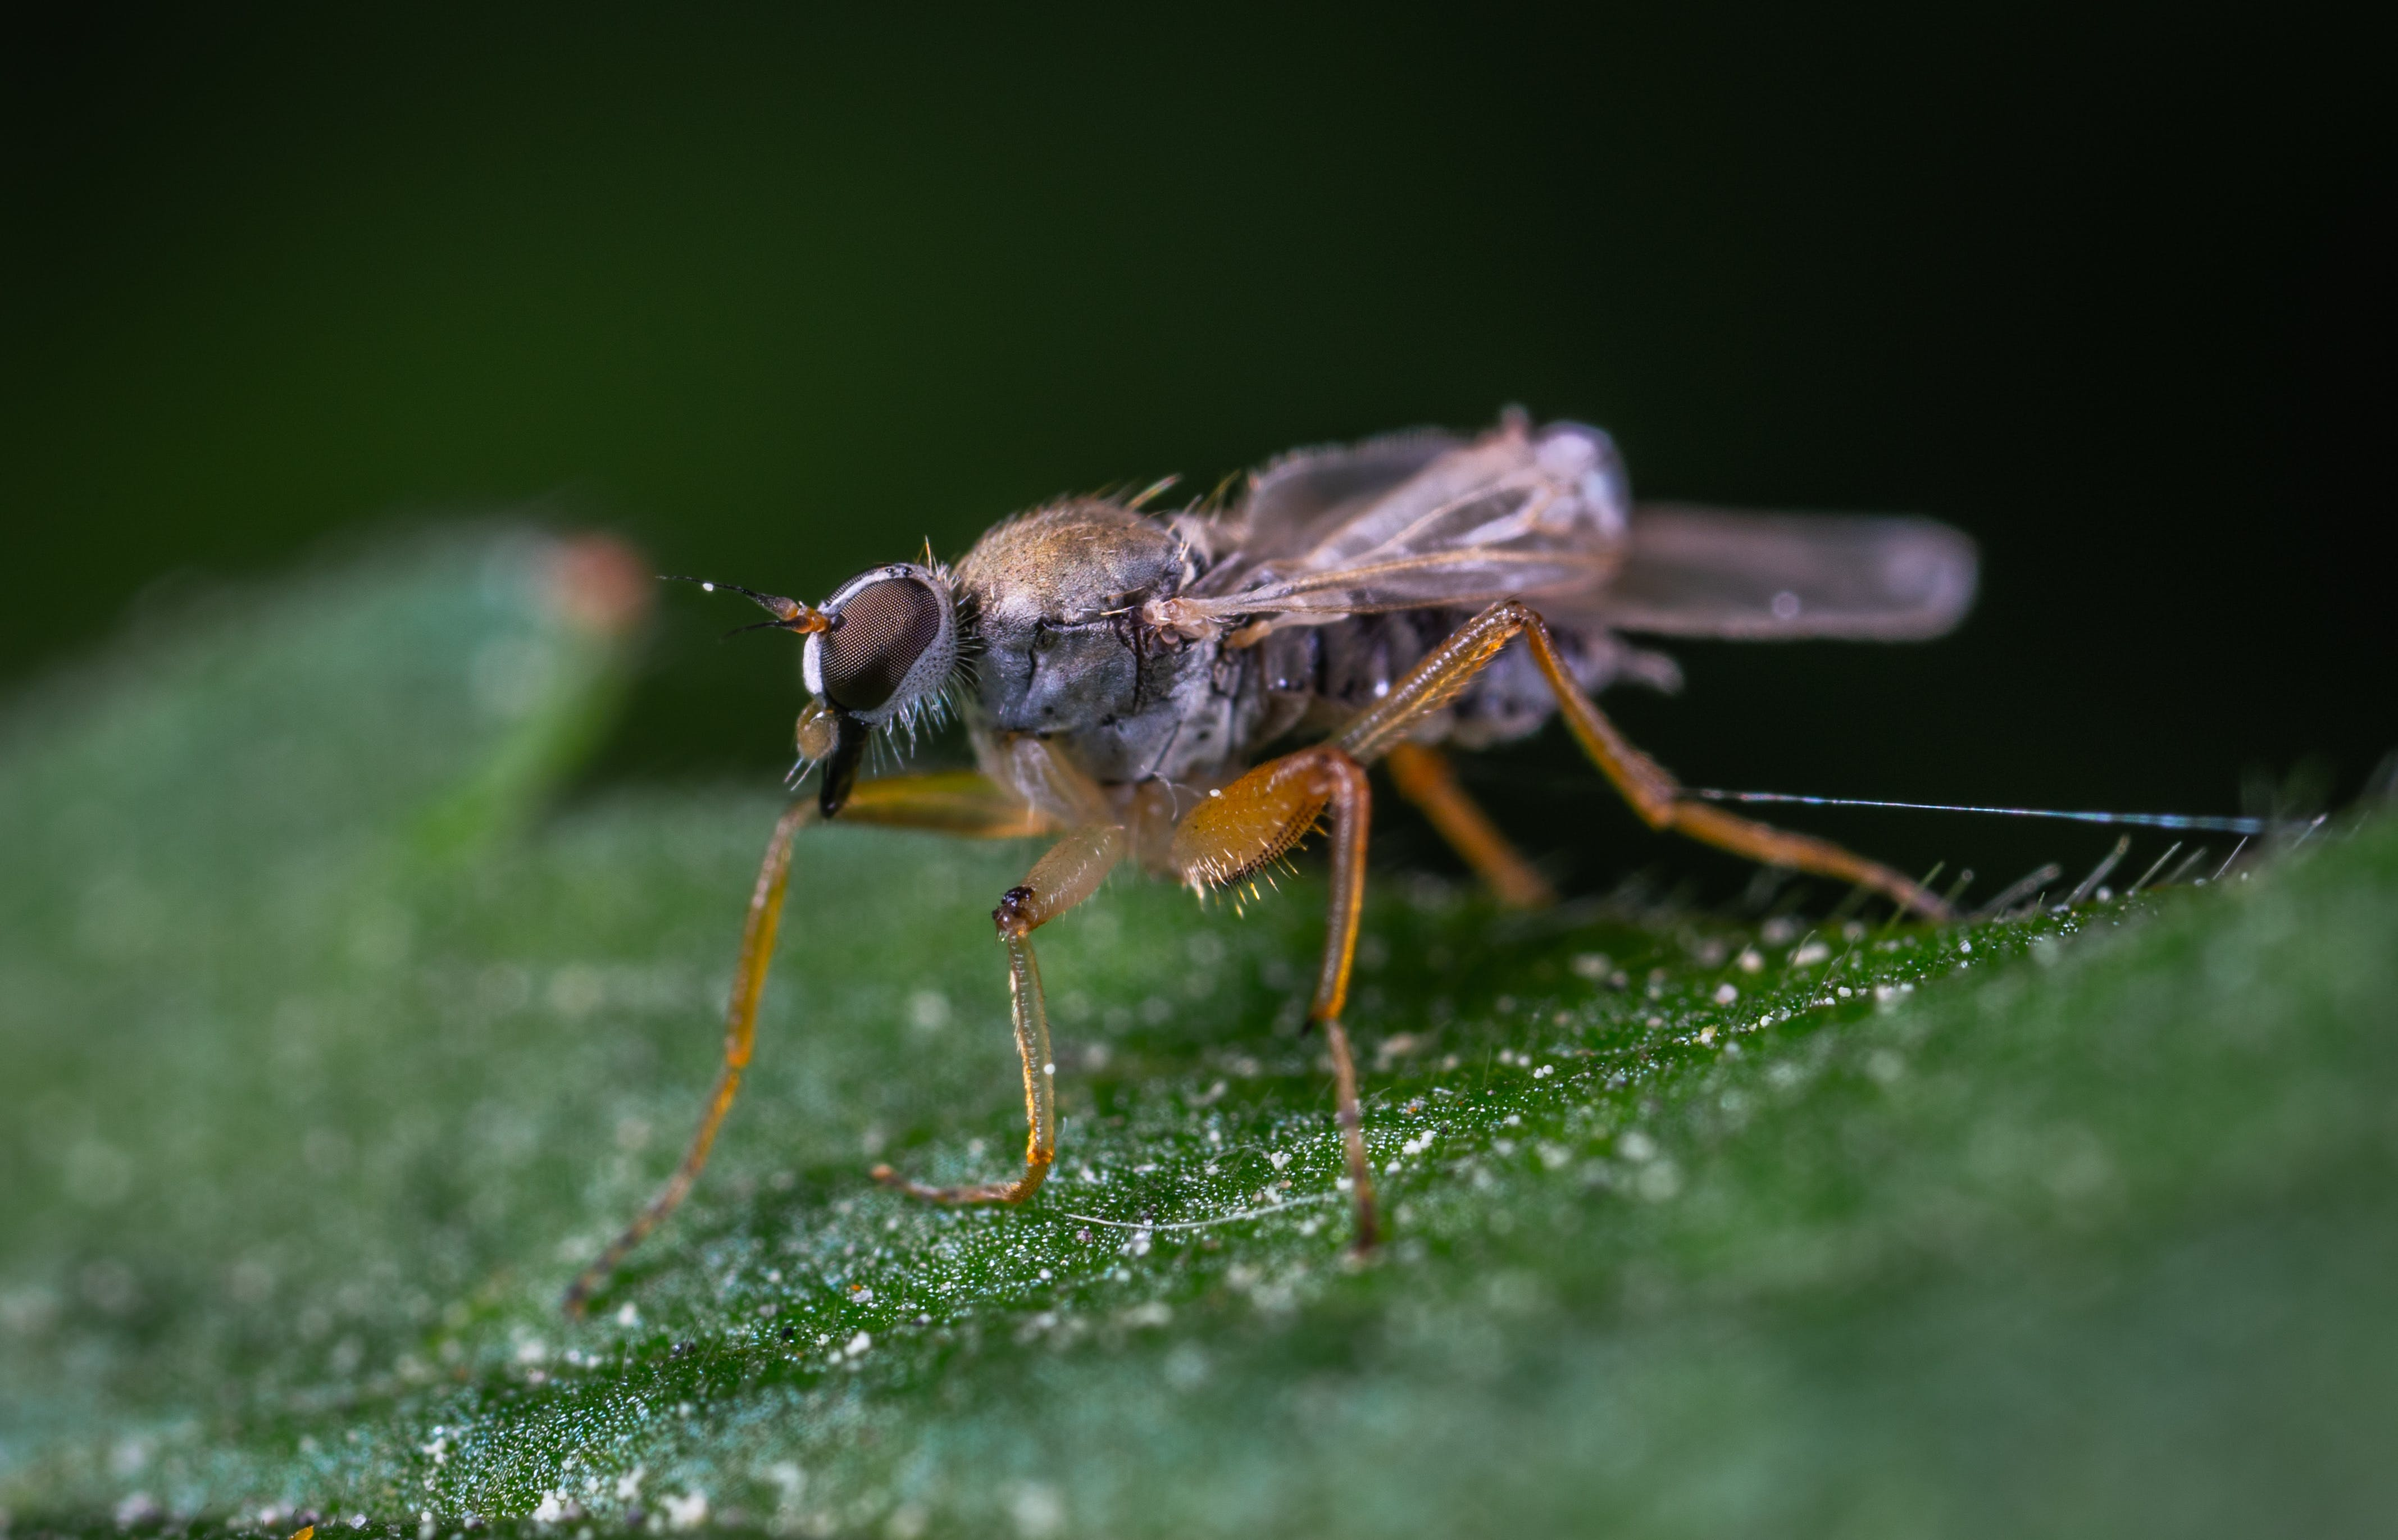 Brown Hoverfly on Green Leaf